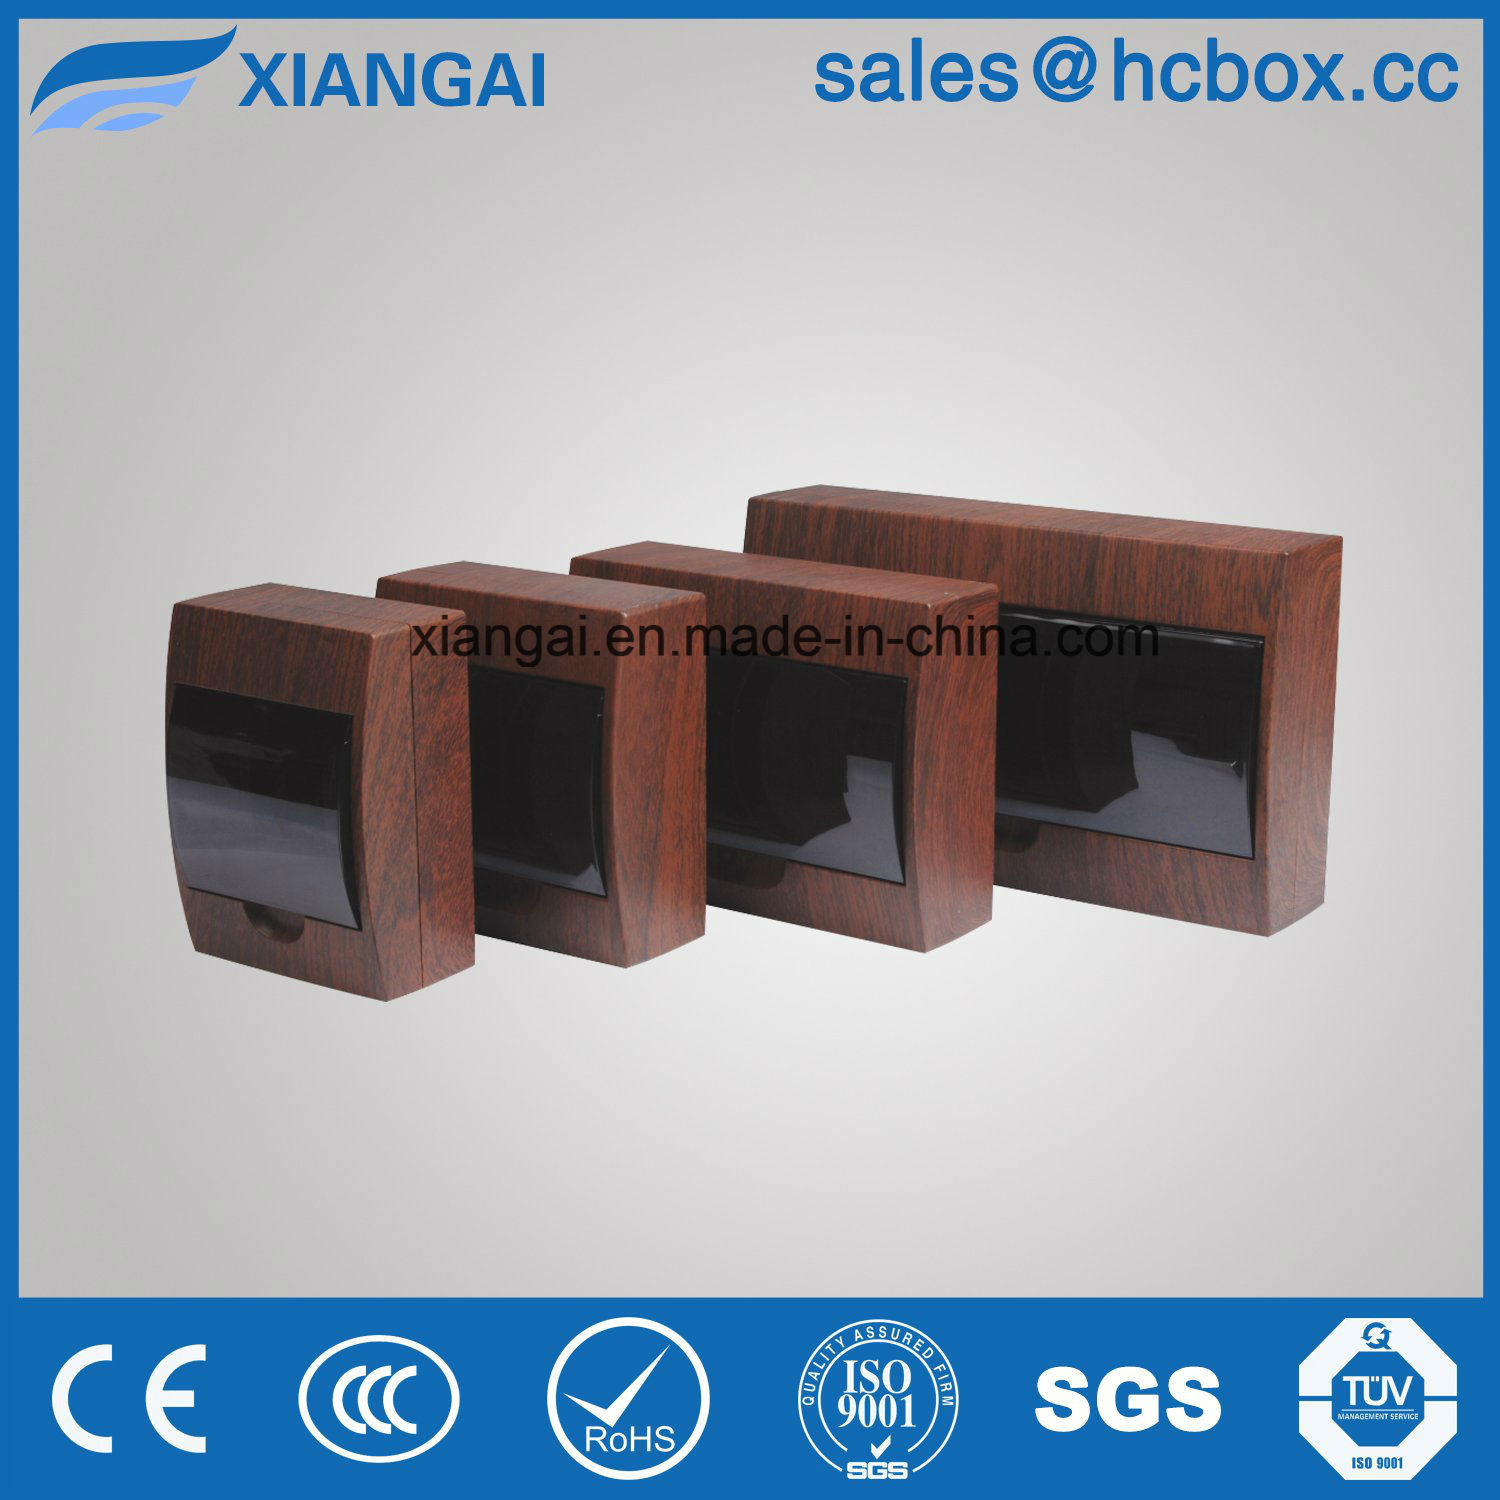 Plastic Distribution Box Brown Wooden Color Distribution Box Newest Color Tsm Box